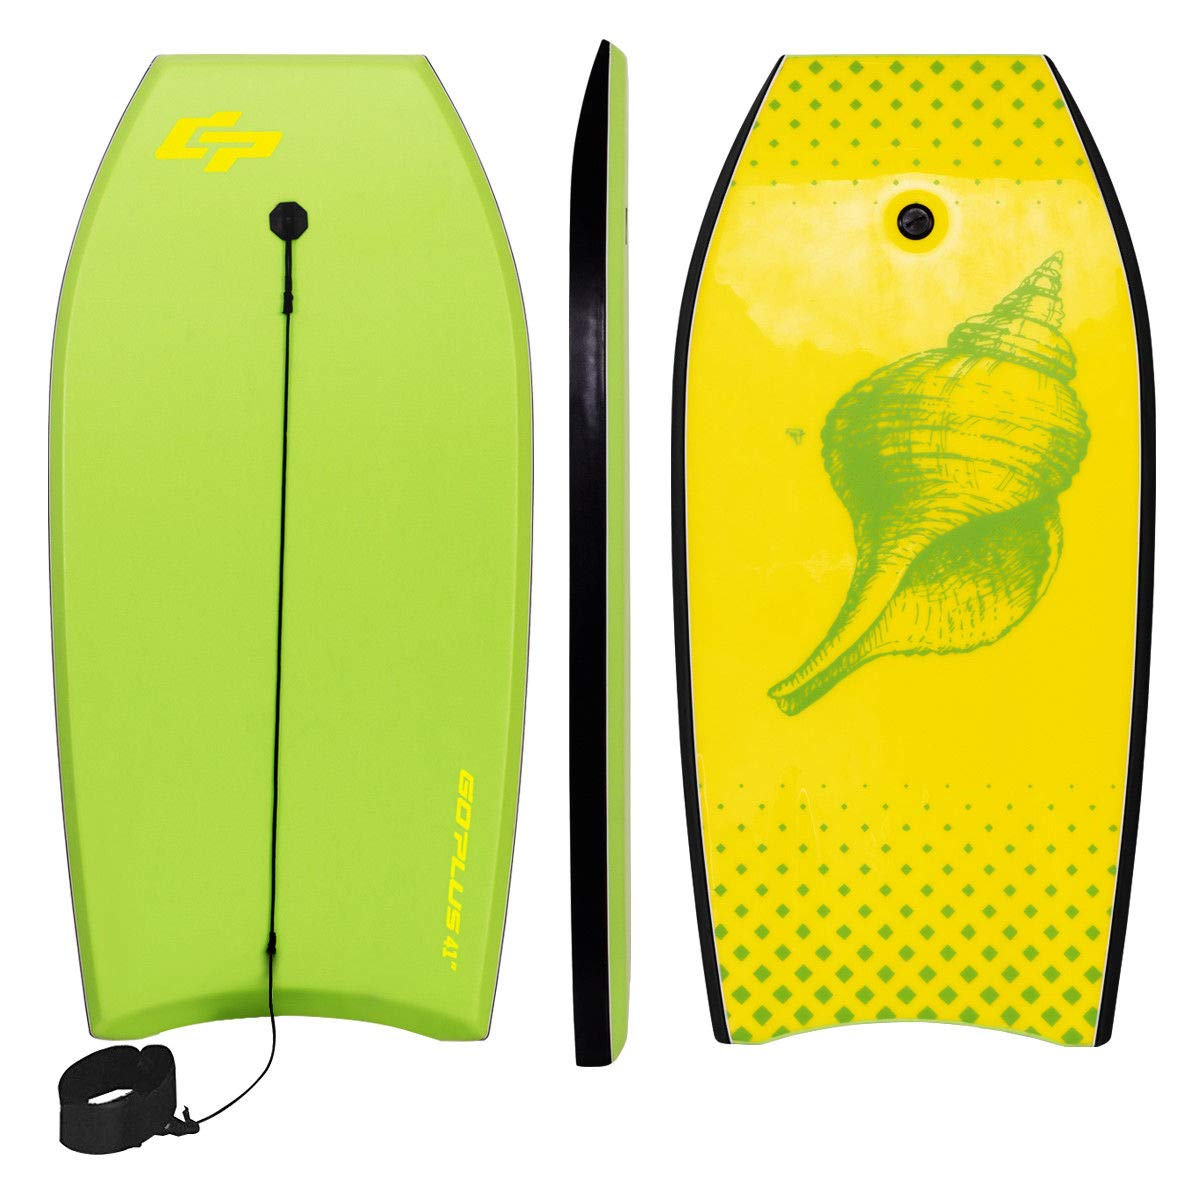 Goplus 41 inch Super Bodyboard Body Board EPS Core, IXPE Deck, HDPE Slick Bottom with Leash, Light Weight Perfect Surfing for Kids and Adults (Yellow Green) by Goplus